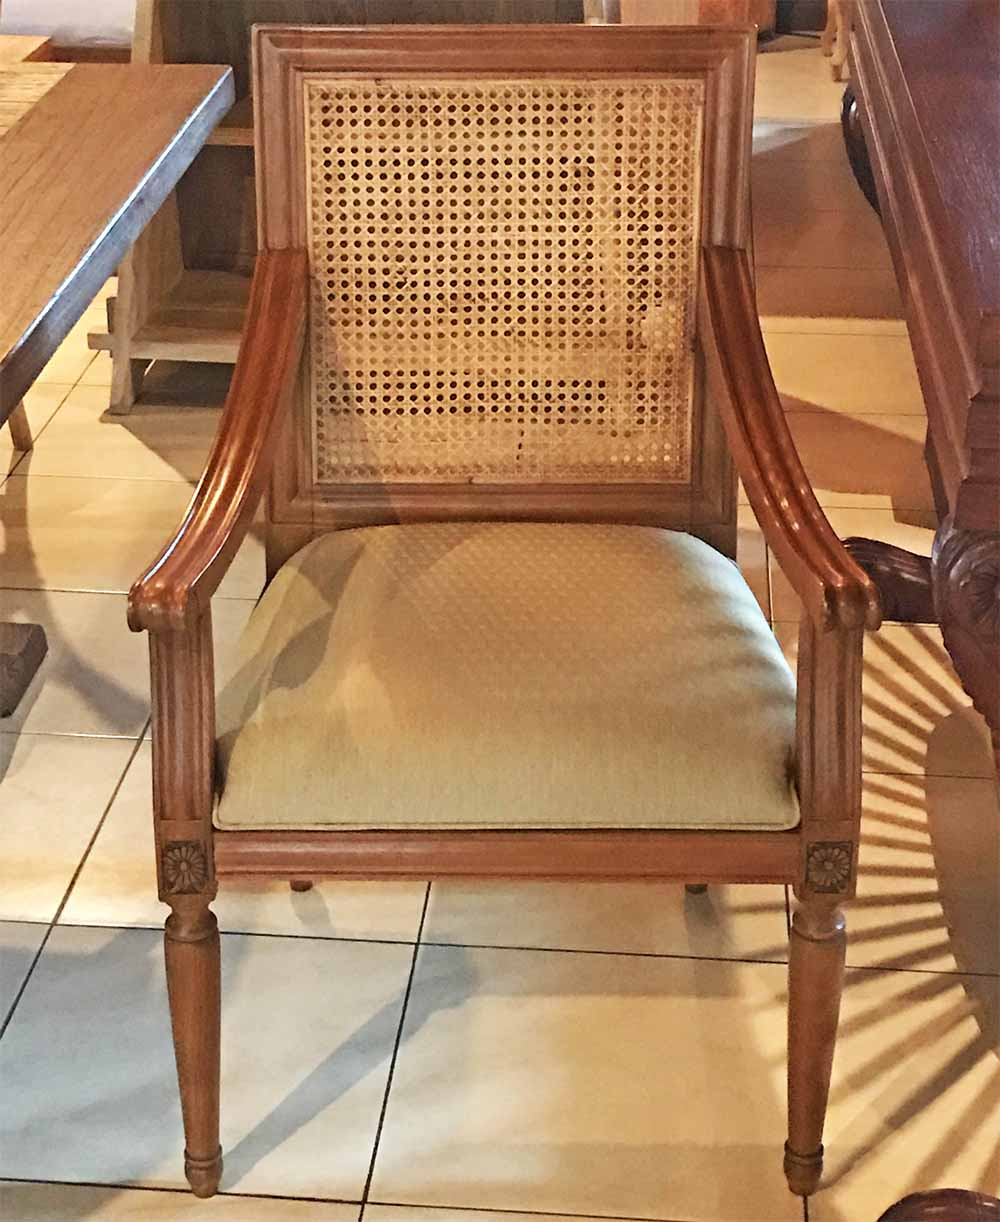 A French-style dining chair in Bali.